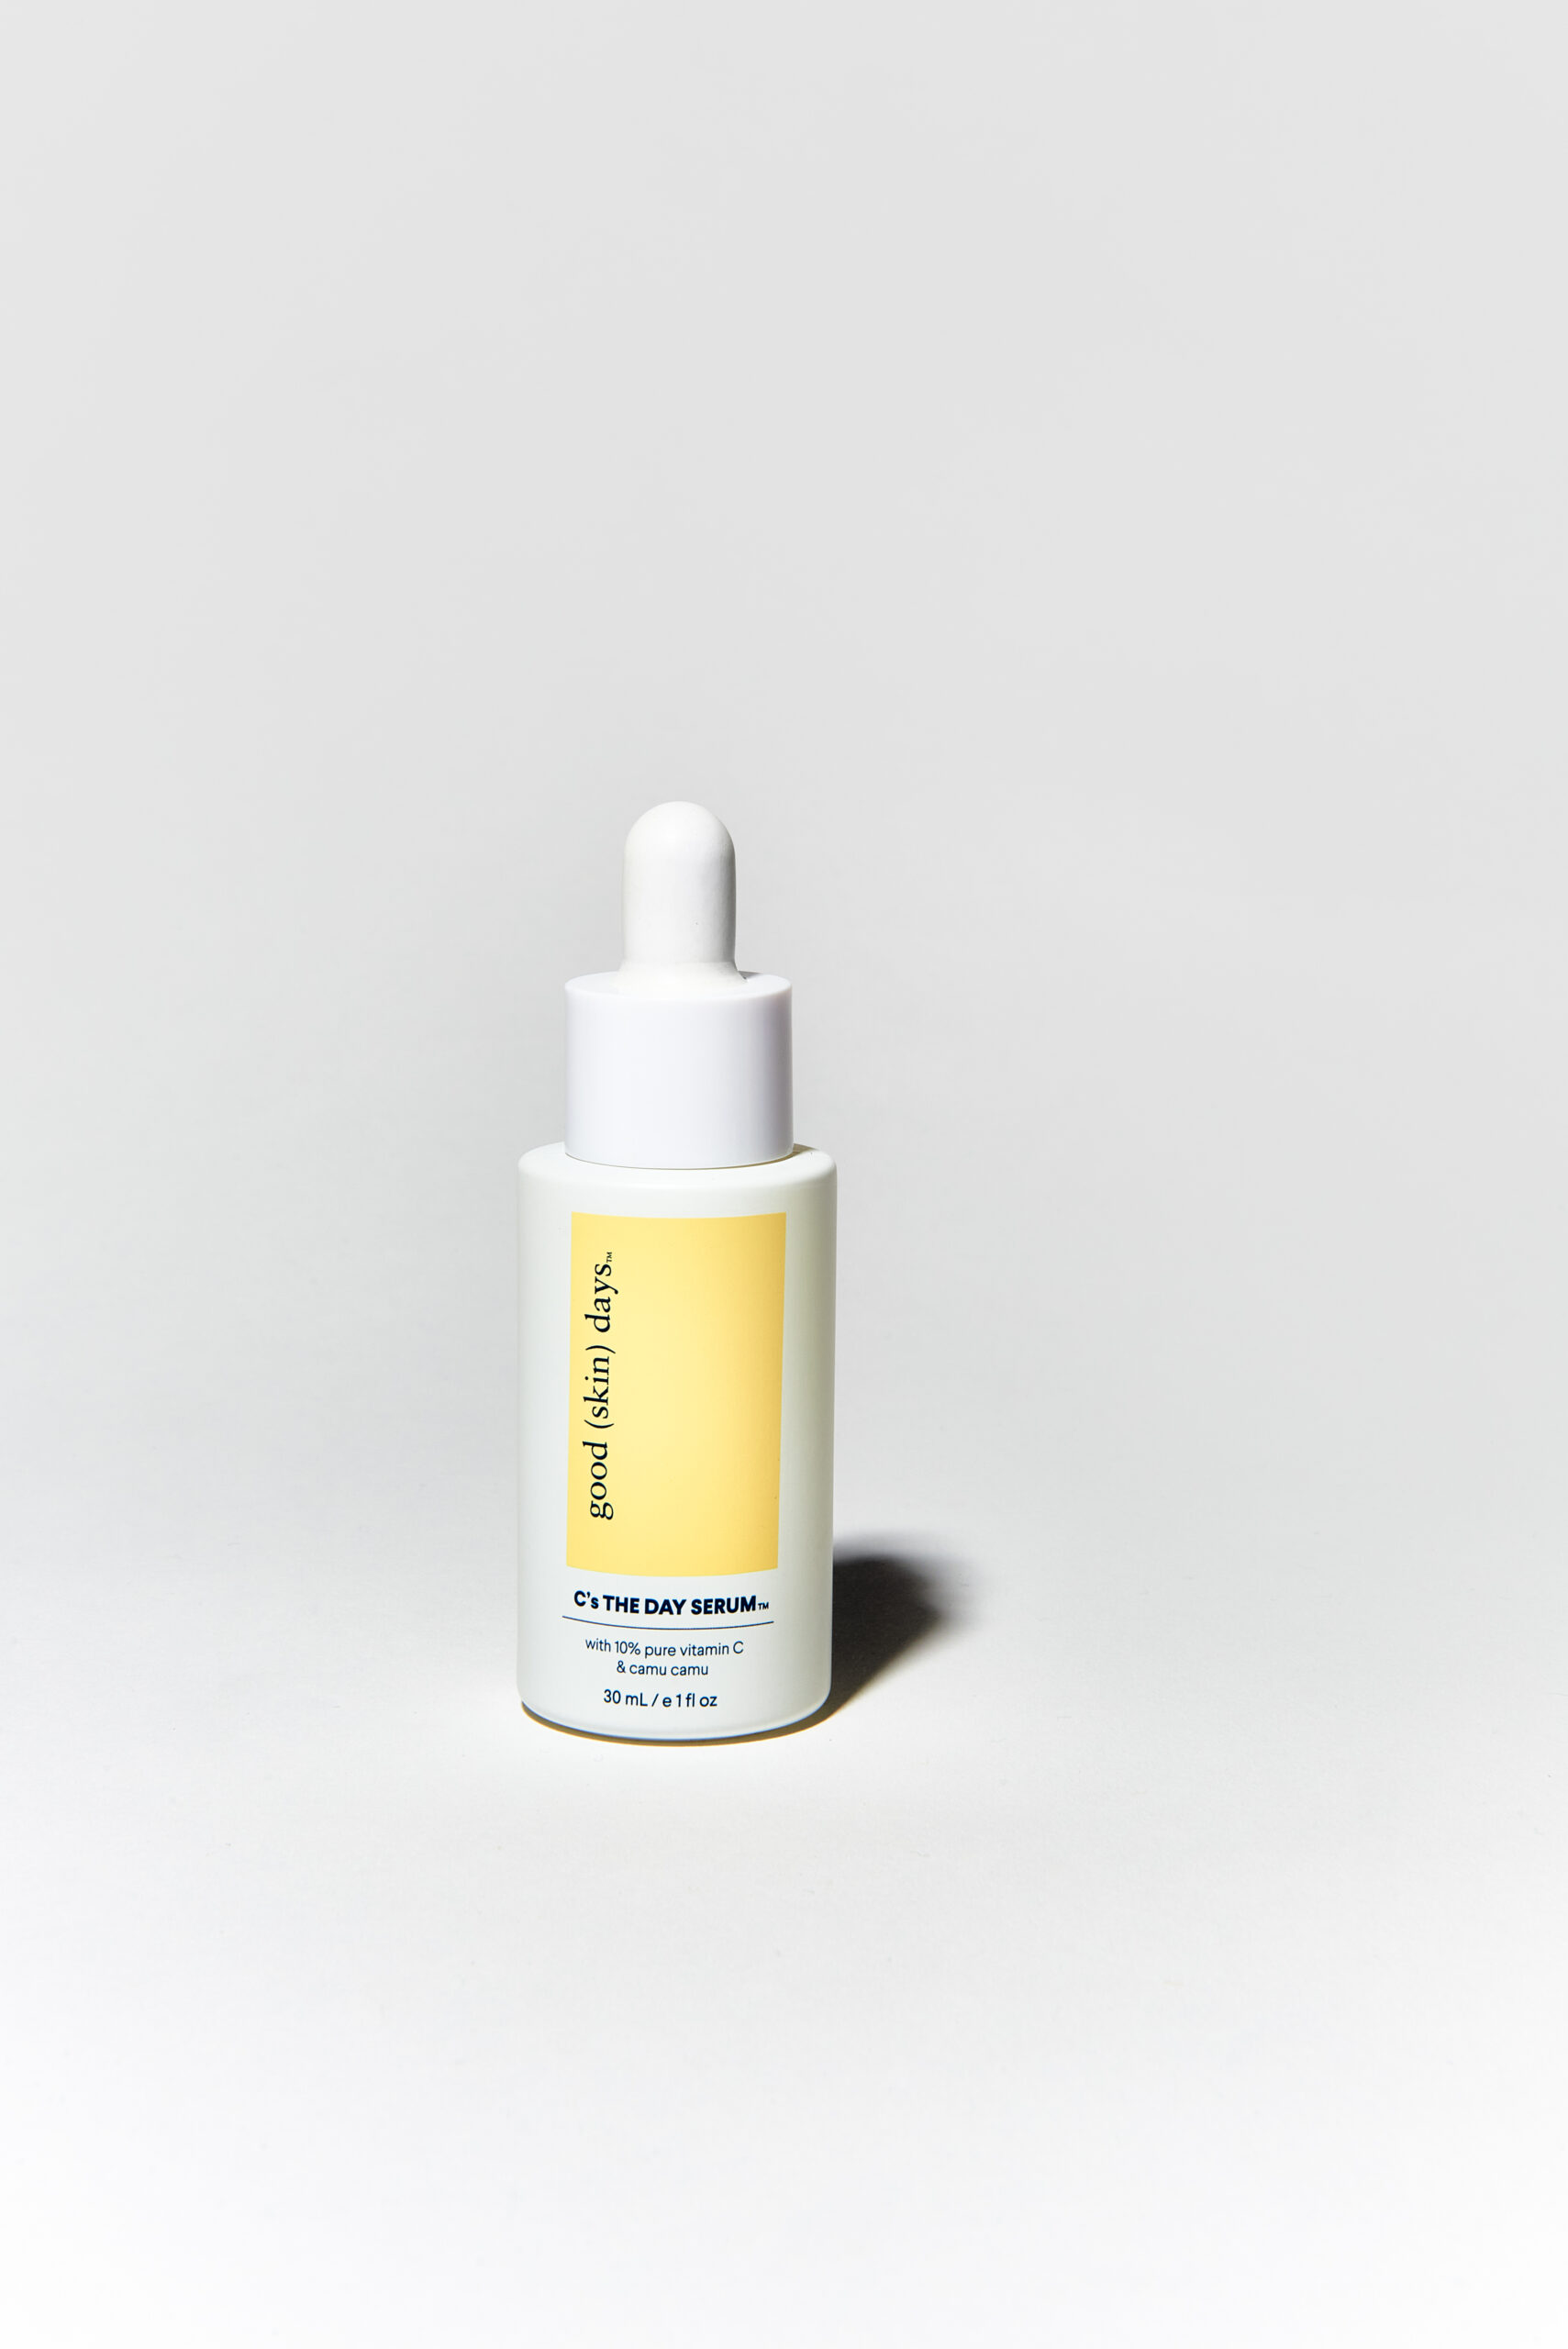 Good Skin Days Cs The Day Serum What Vitamin C Product Is Best For You?